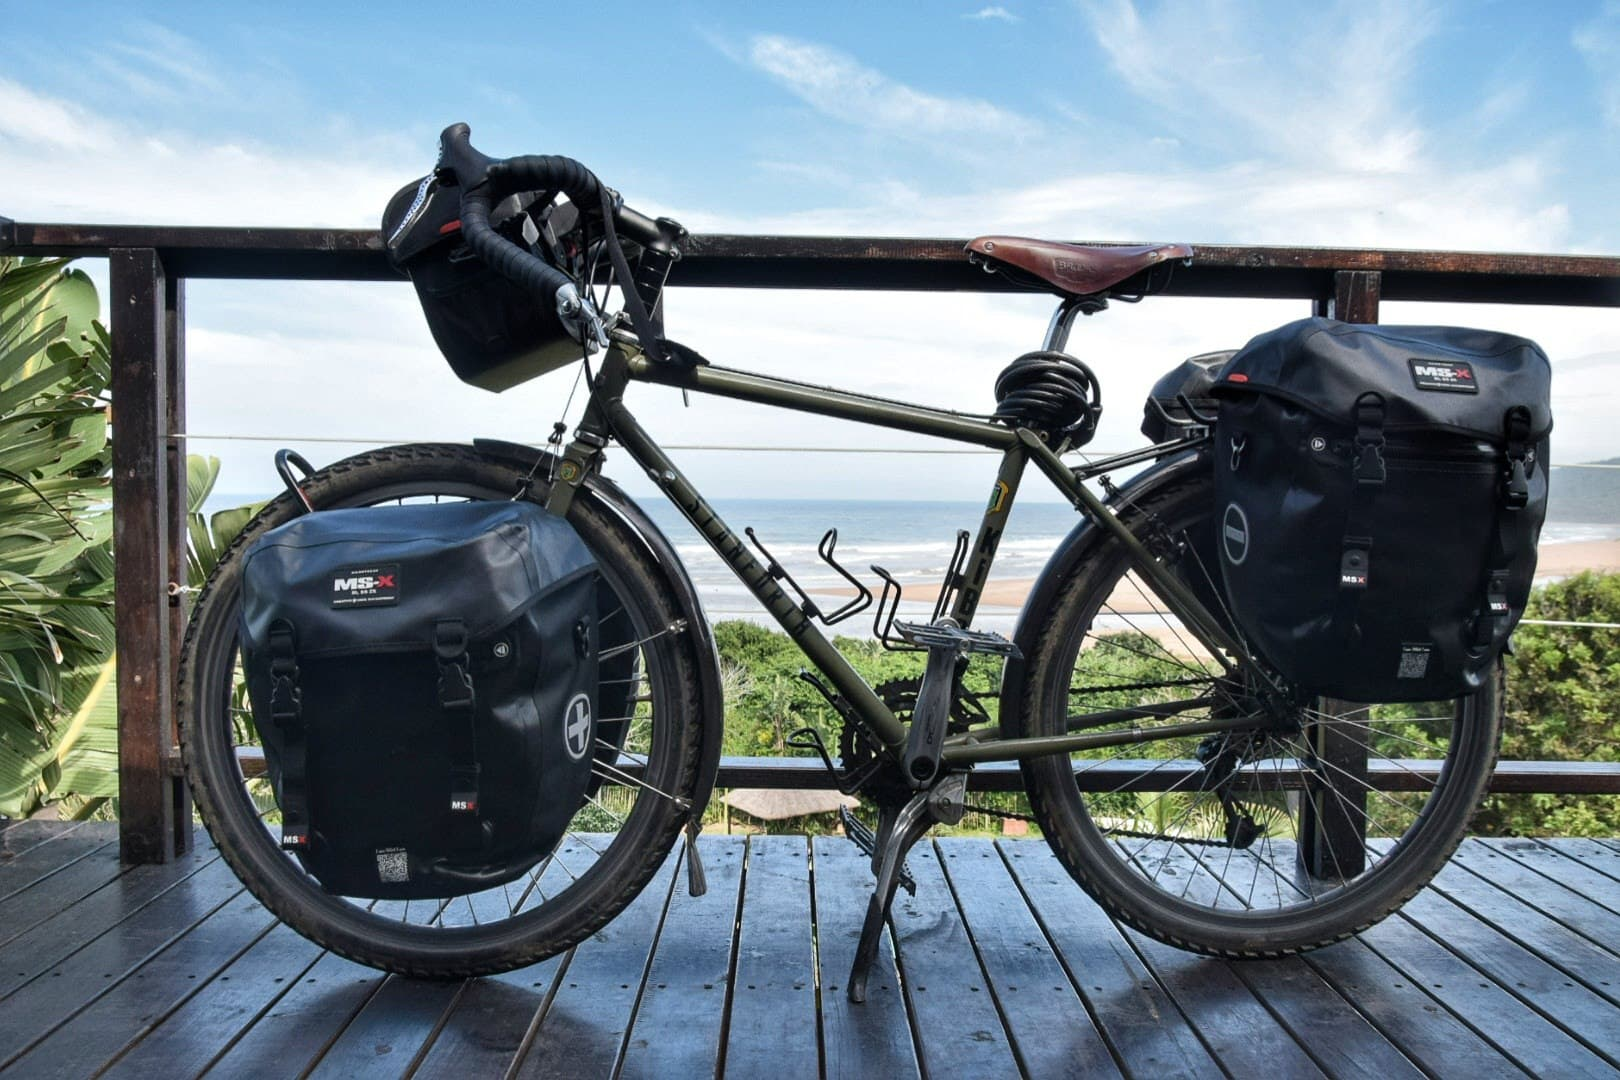 Touring Bikes: 20 of the Best Travel Bicycles under 2000$ Compared